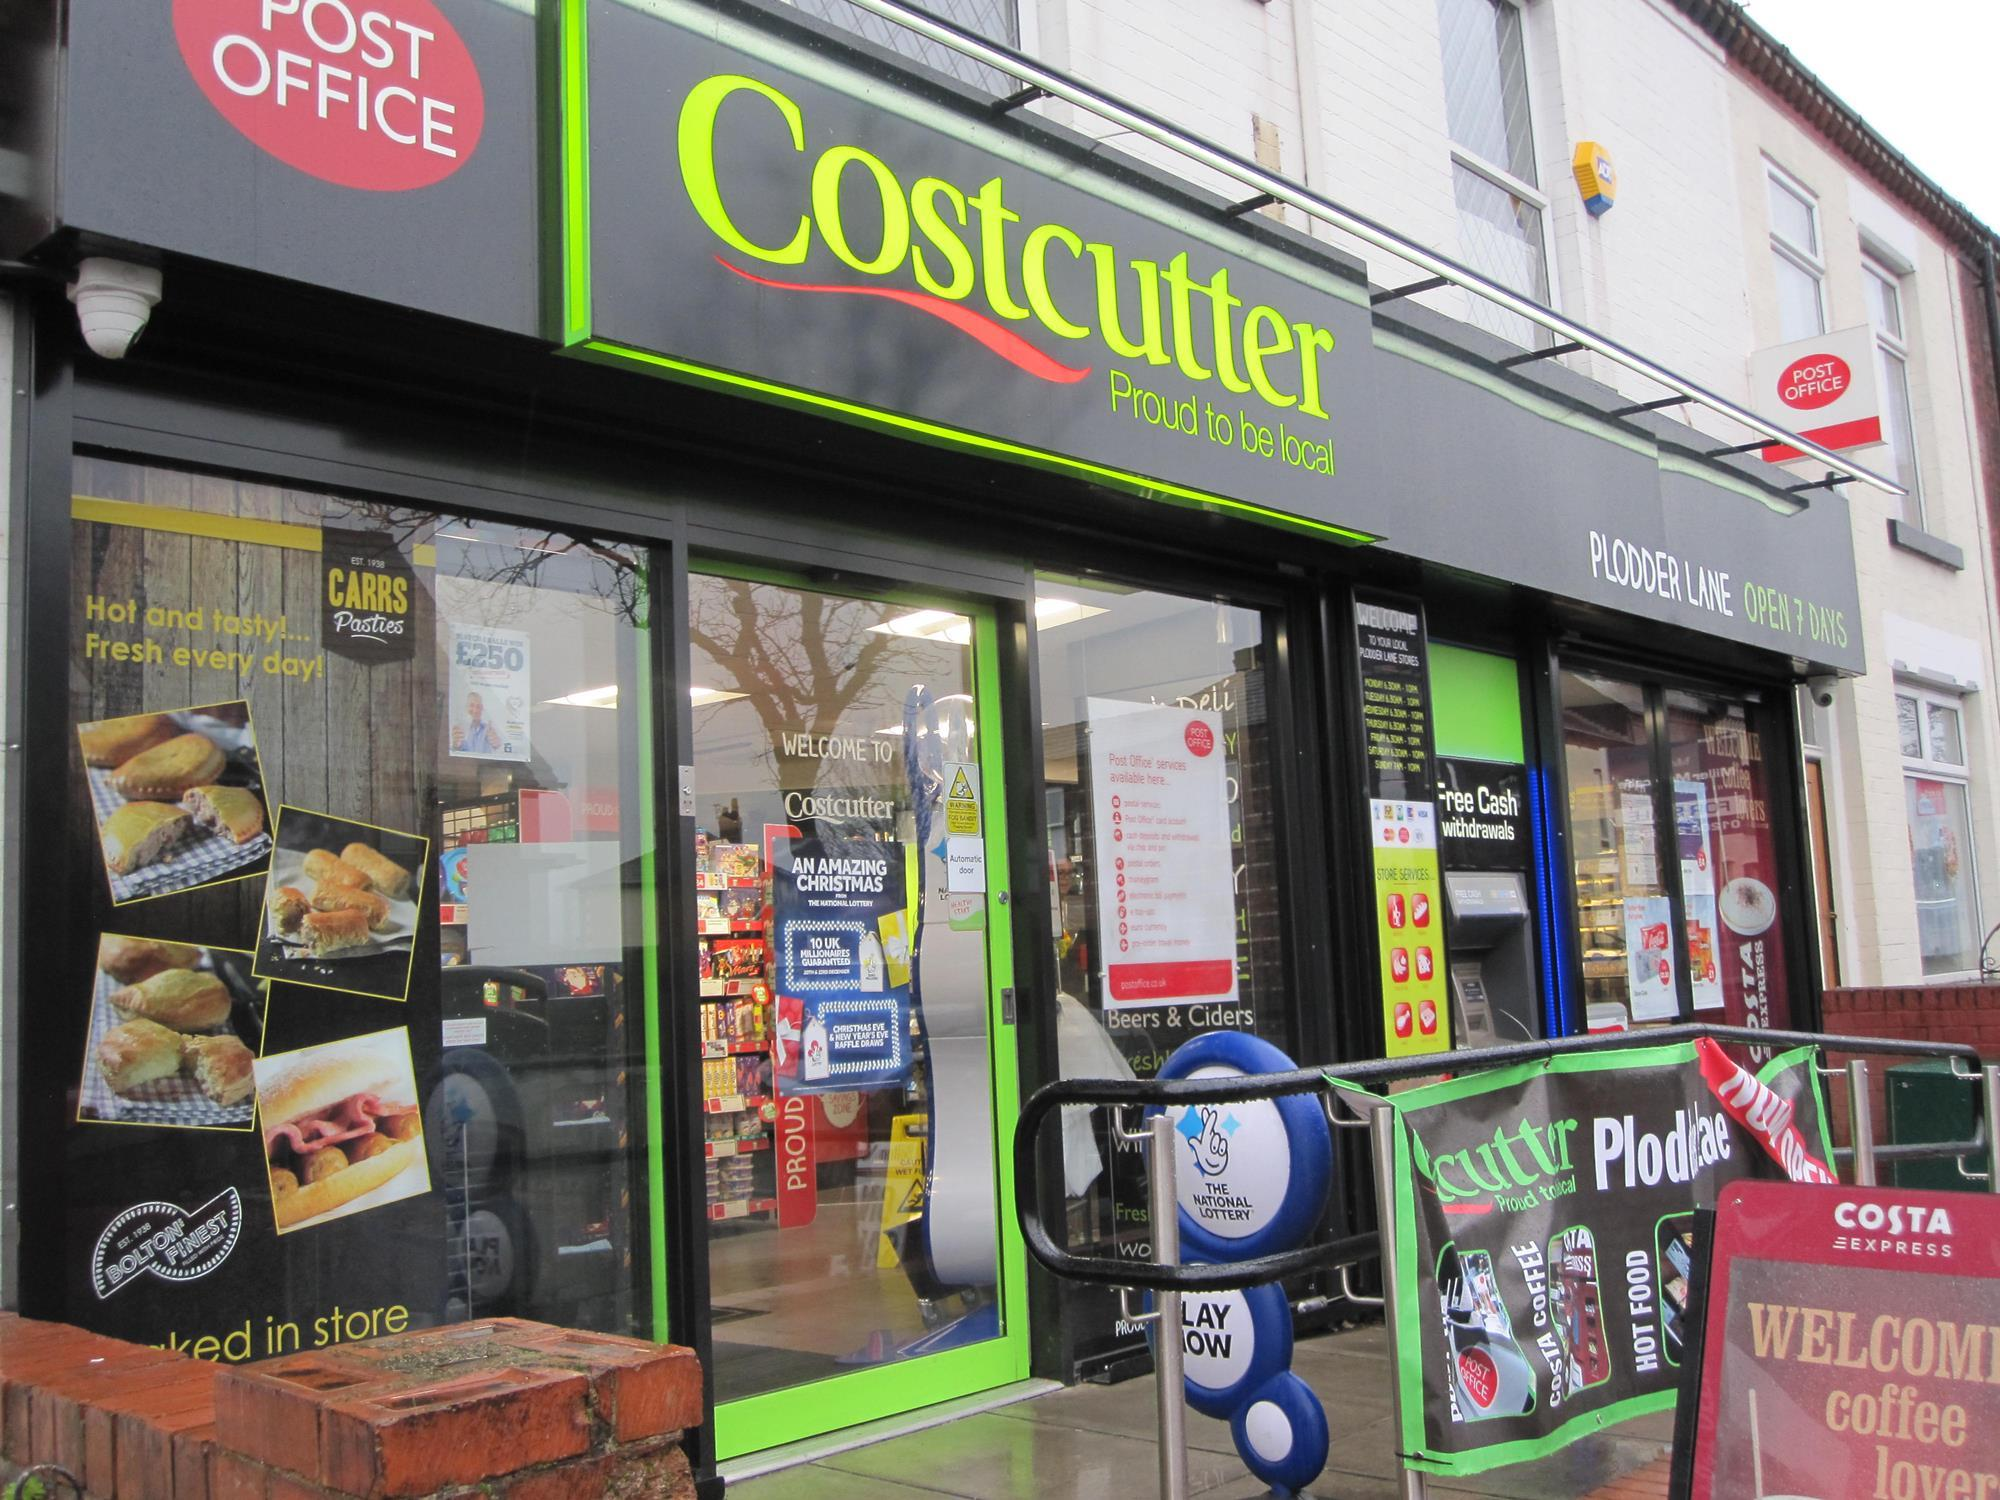 Costcutter Plodder Lane Bolton Features Convenience Store